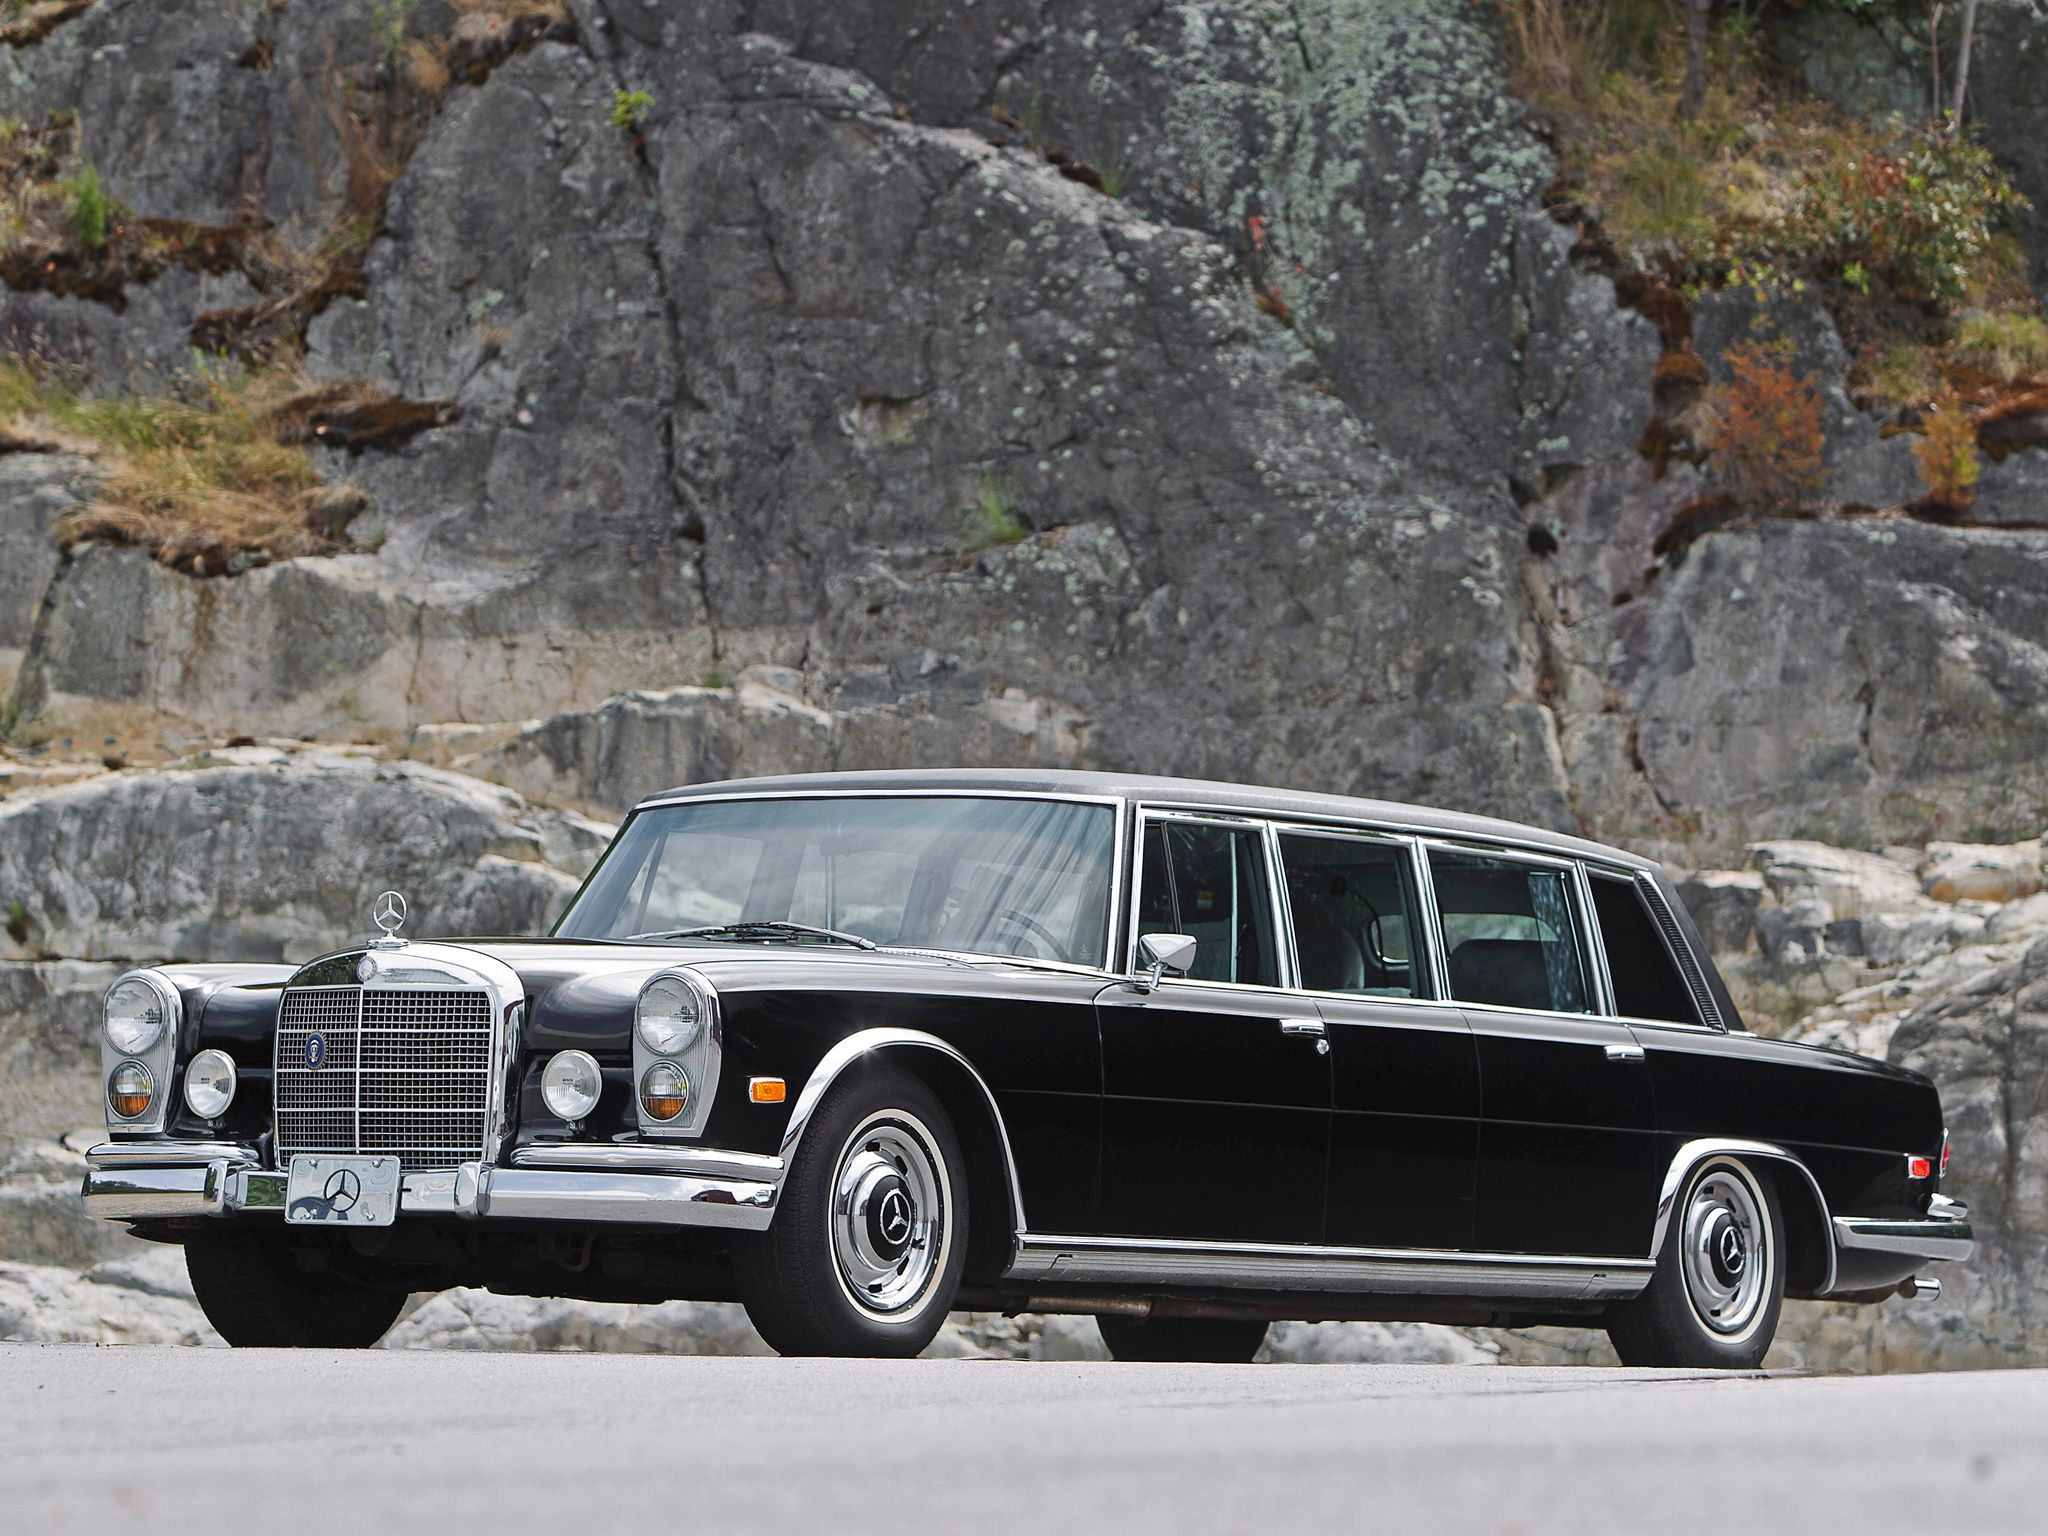 Mercedes benz 600 4 door pullman limousine w100 1974 for Mercedes benz limo